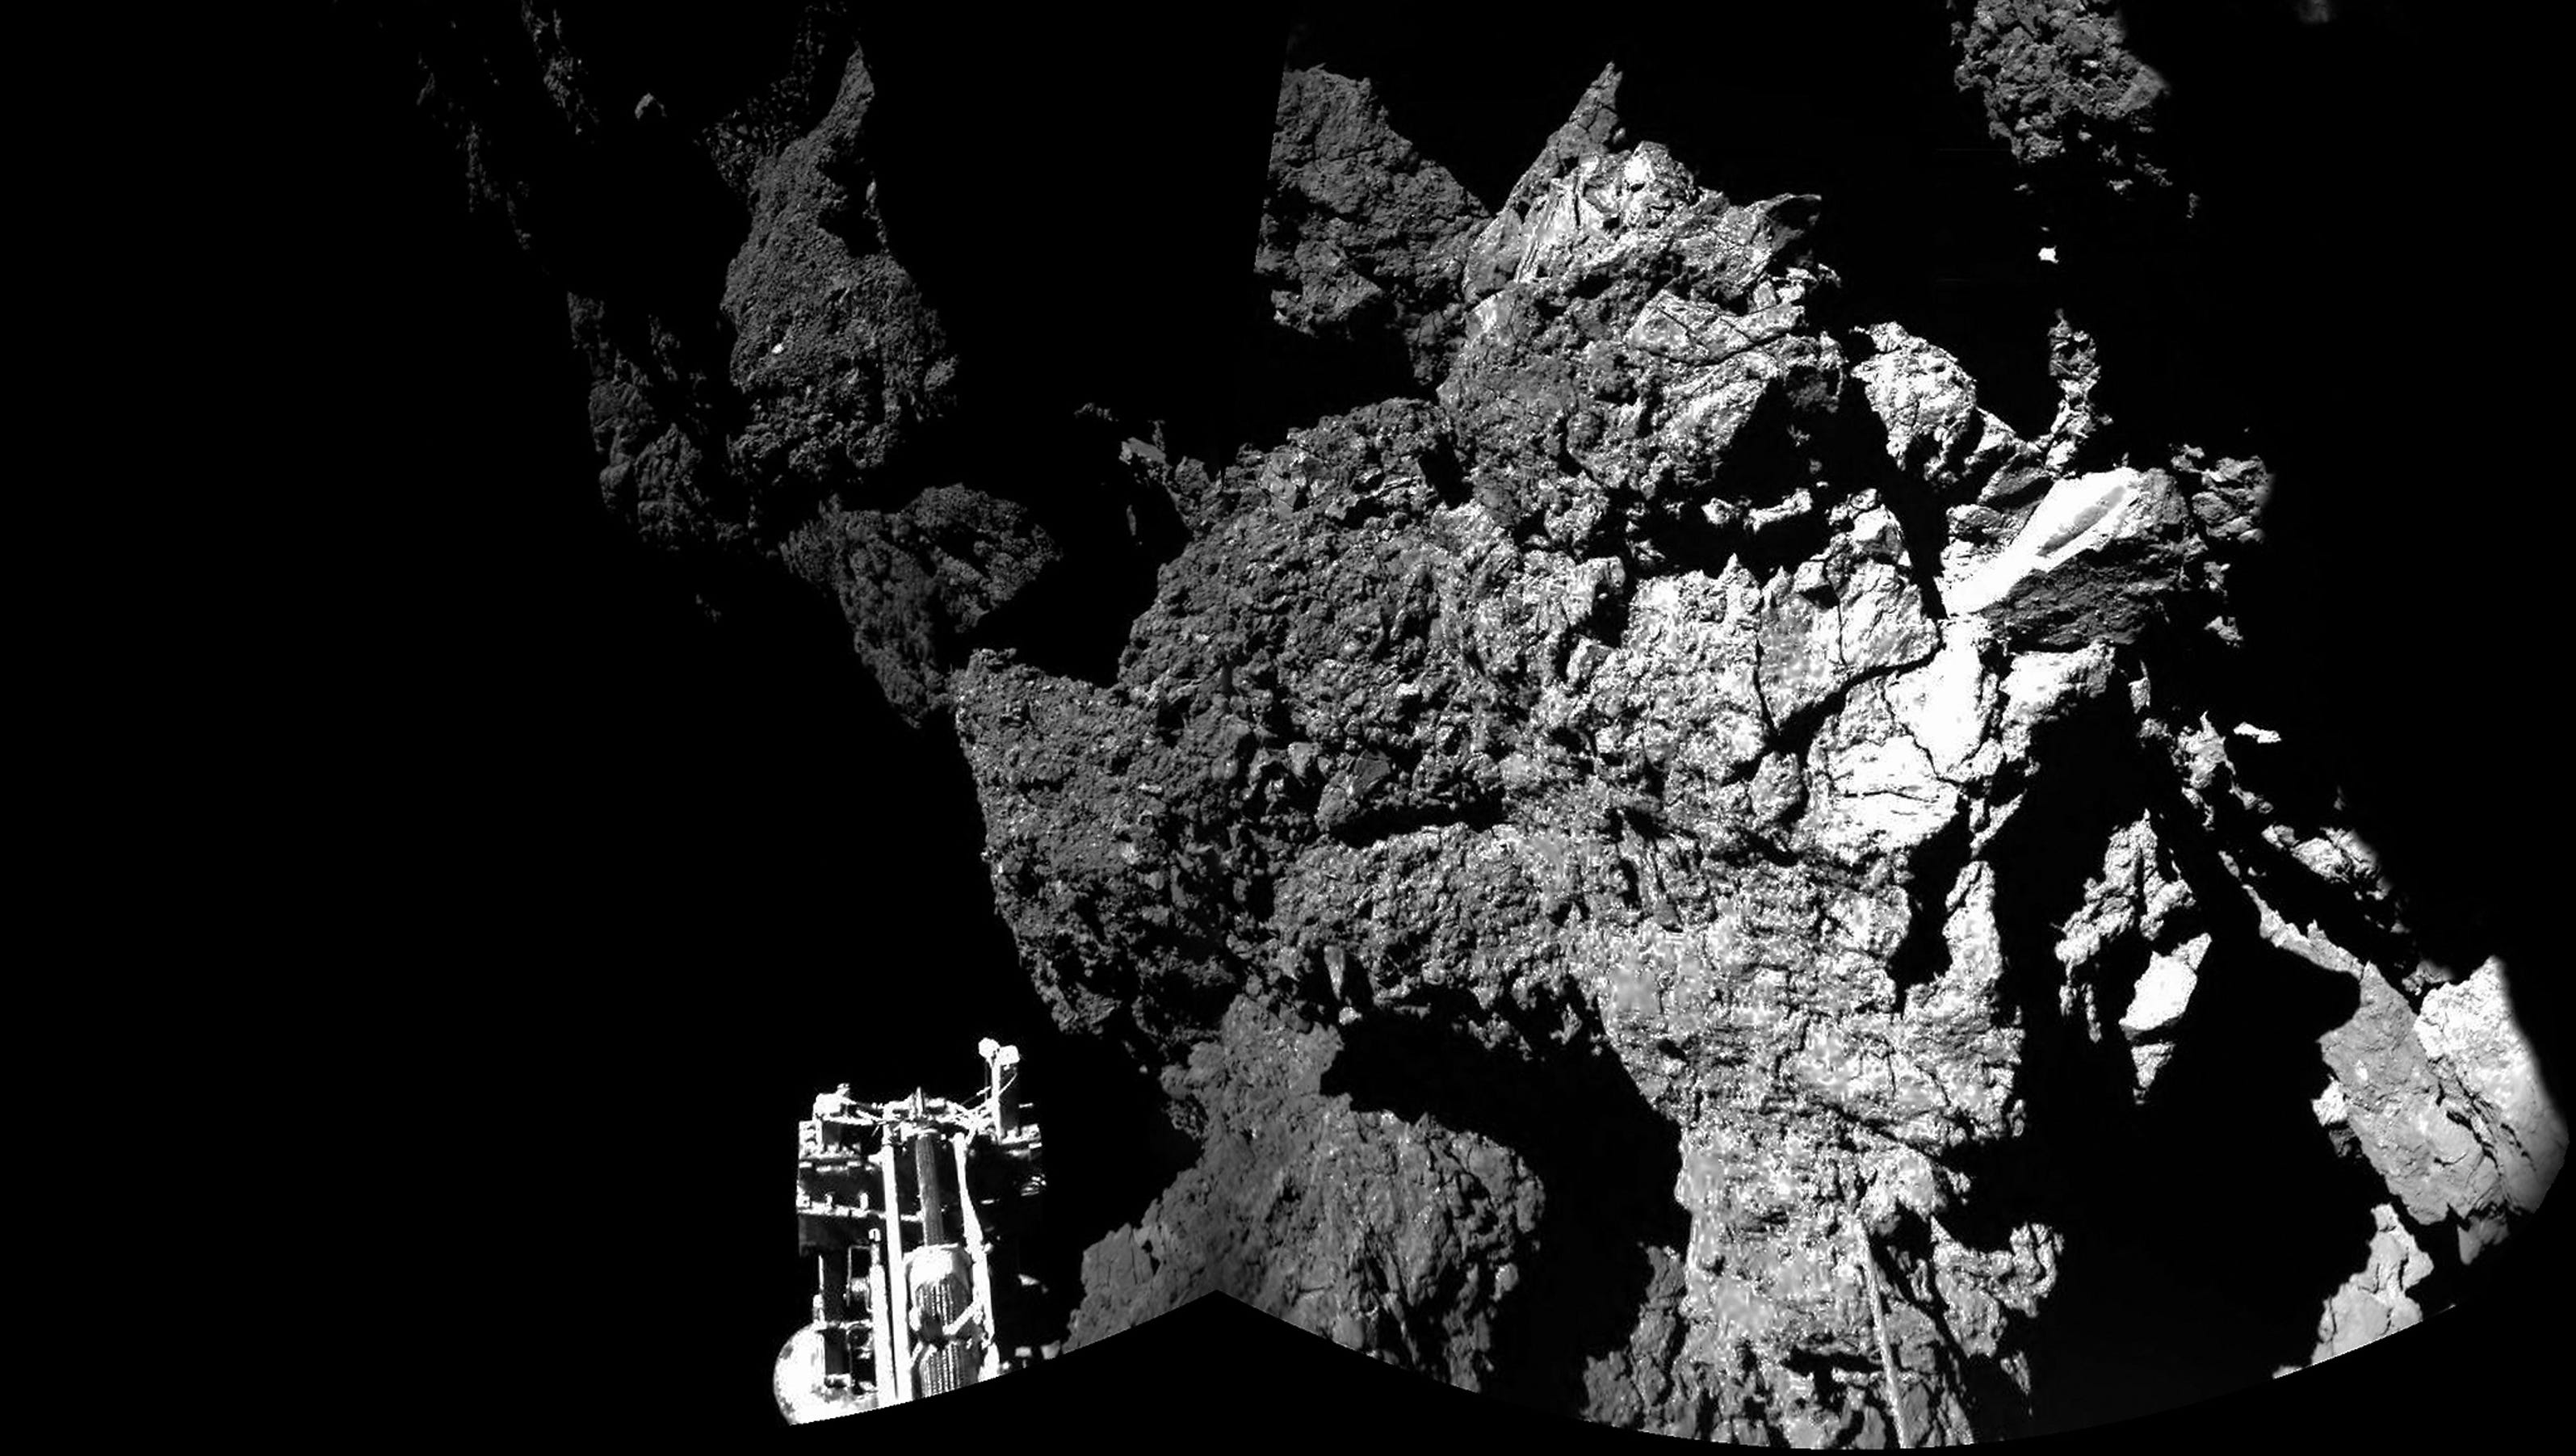 Comet probe sends data to Earth, then goes to sleep